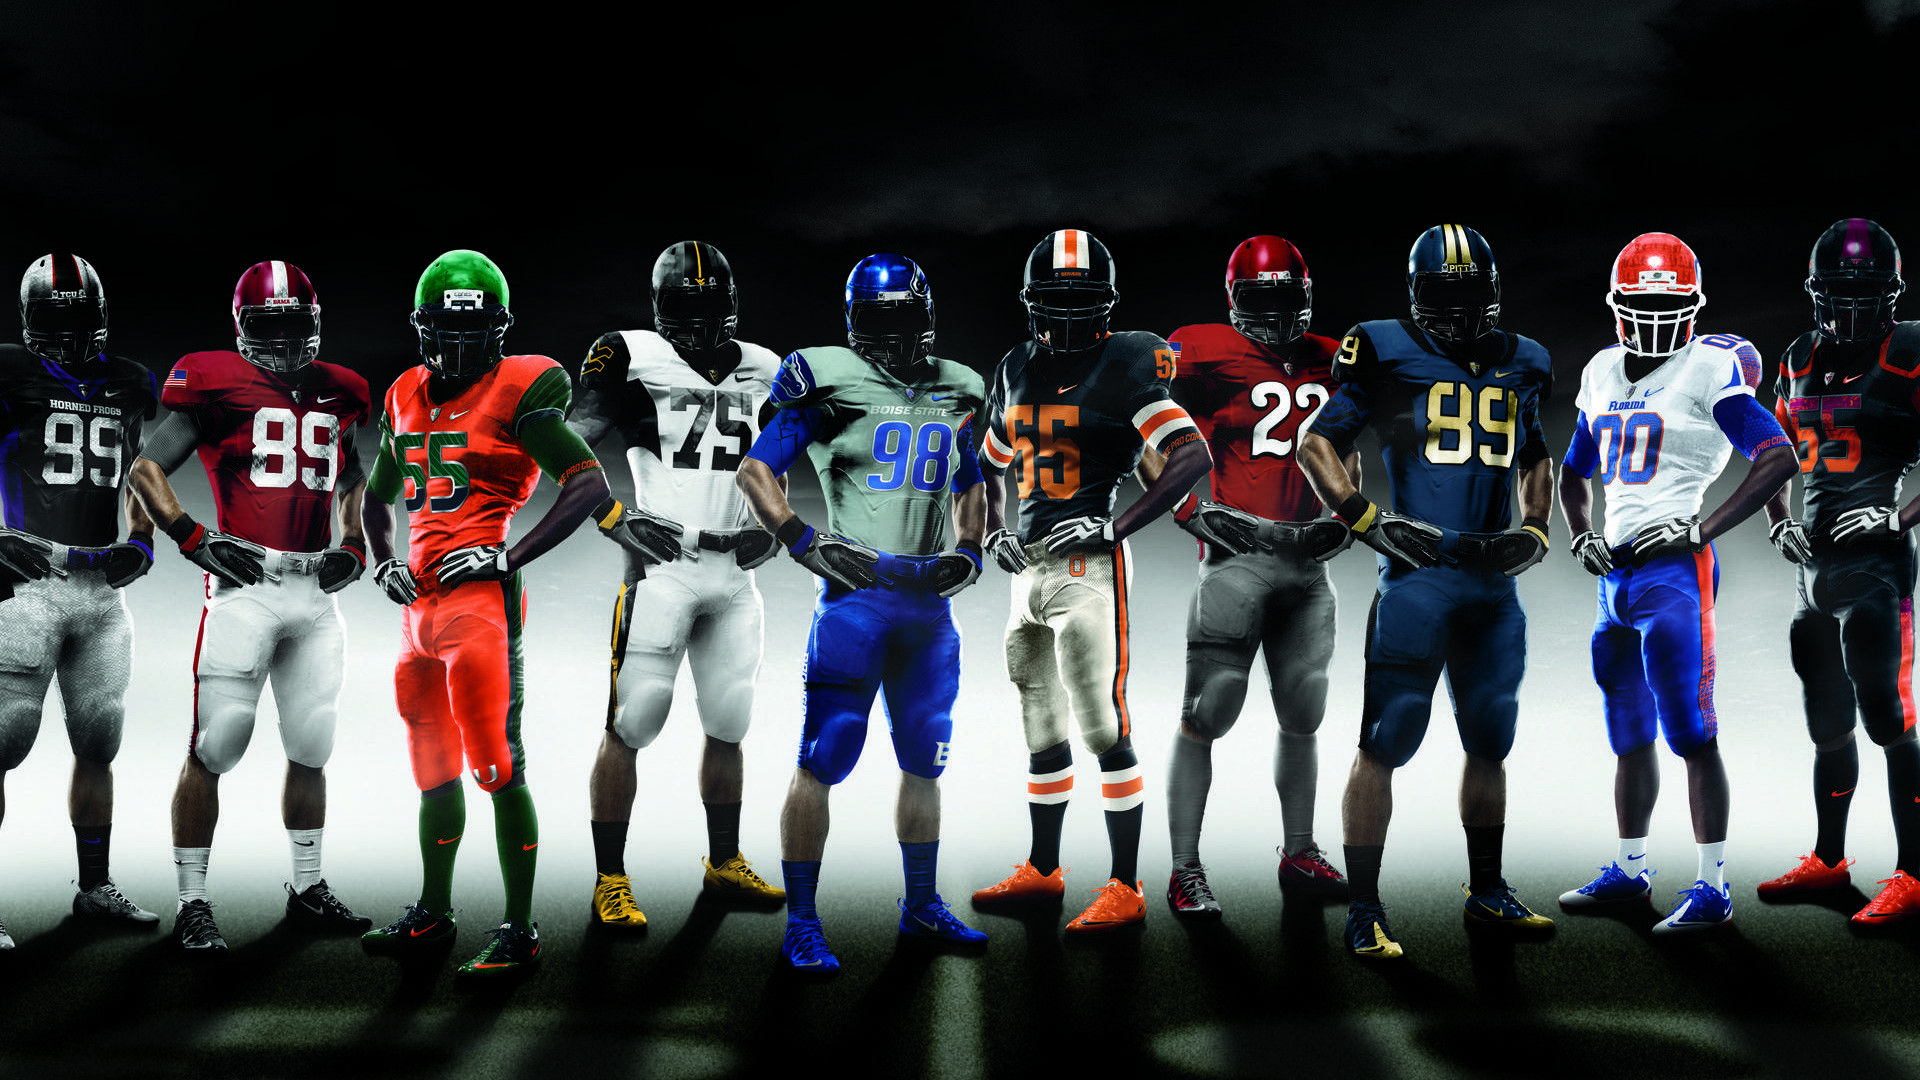 Cool Nfl Backgrounds Hd 2021 Nfl Football Wallpapers American Football Players American Football Team College Football Playoff